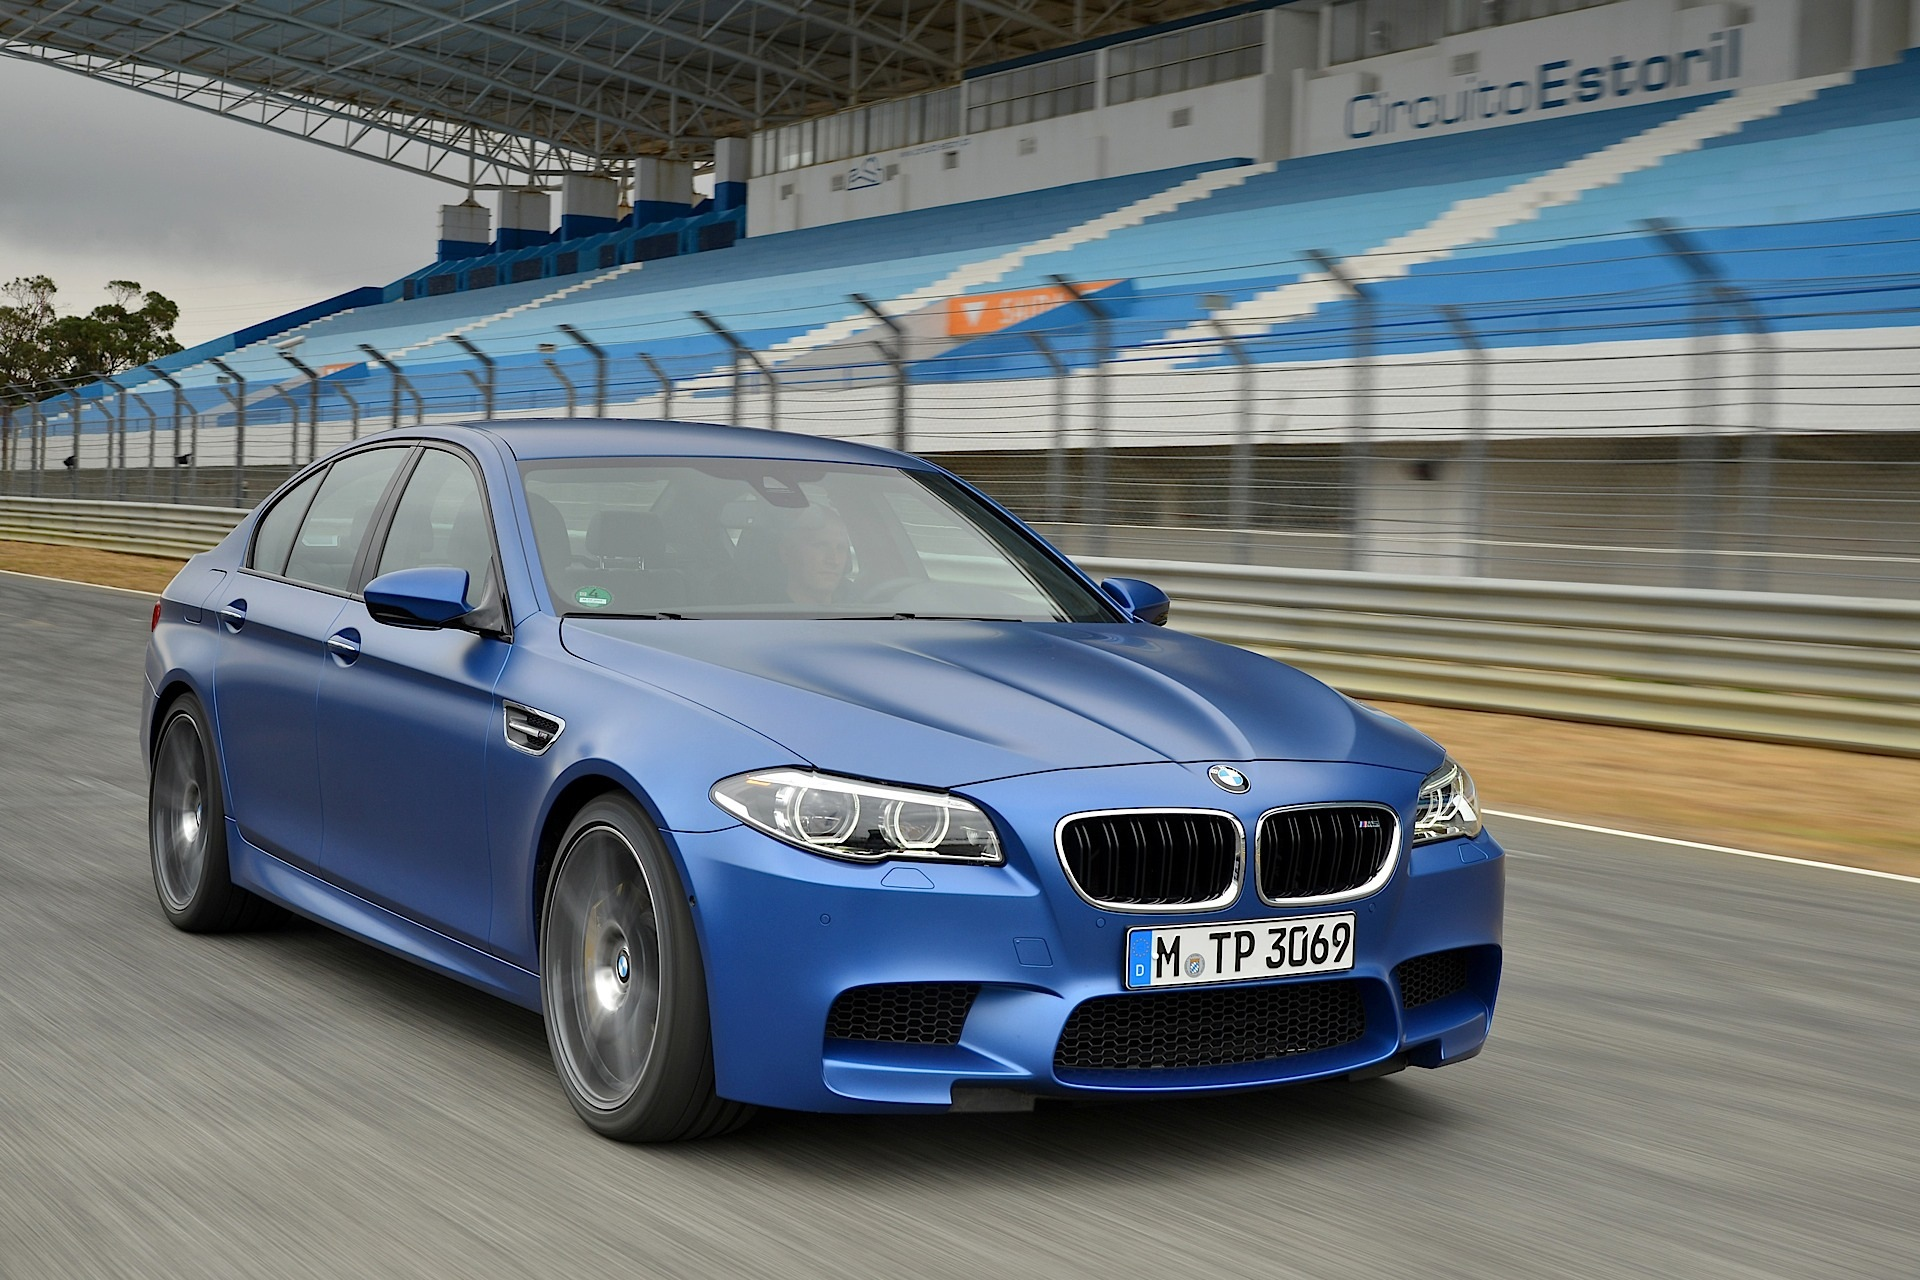 Bmw M5 And M6 Will Get New Individual Paint Finishes This